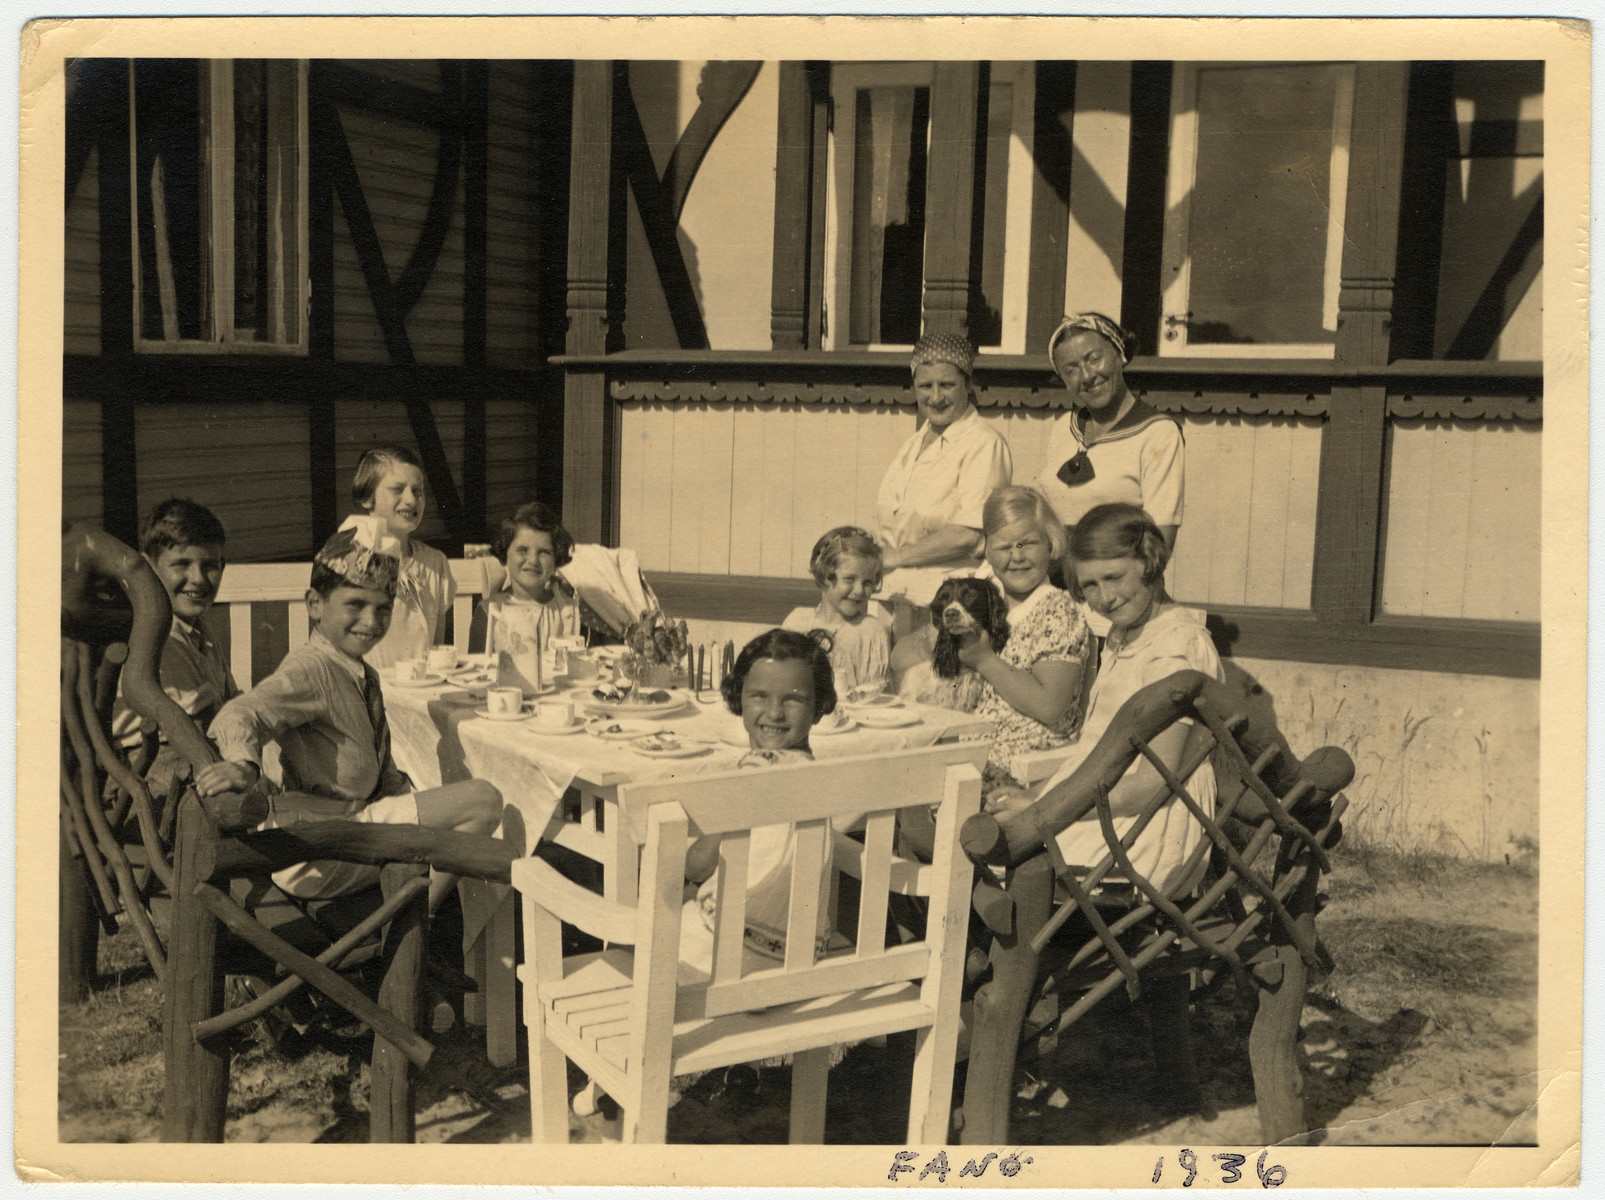 Young children attend a party.  Among those pictured are Gerald Liebenau (front left) and his mother Helene (standing far right). Gerald's sister, Irene, sits directly across the table from him. Her birthday is in July and this could have been a birthday party for her. The picture was taken during a summer holiday on the island of Fanoe, Denmark.